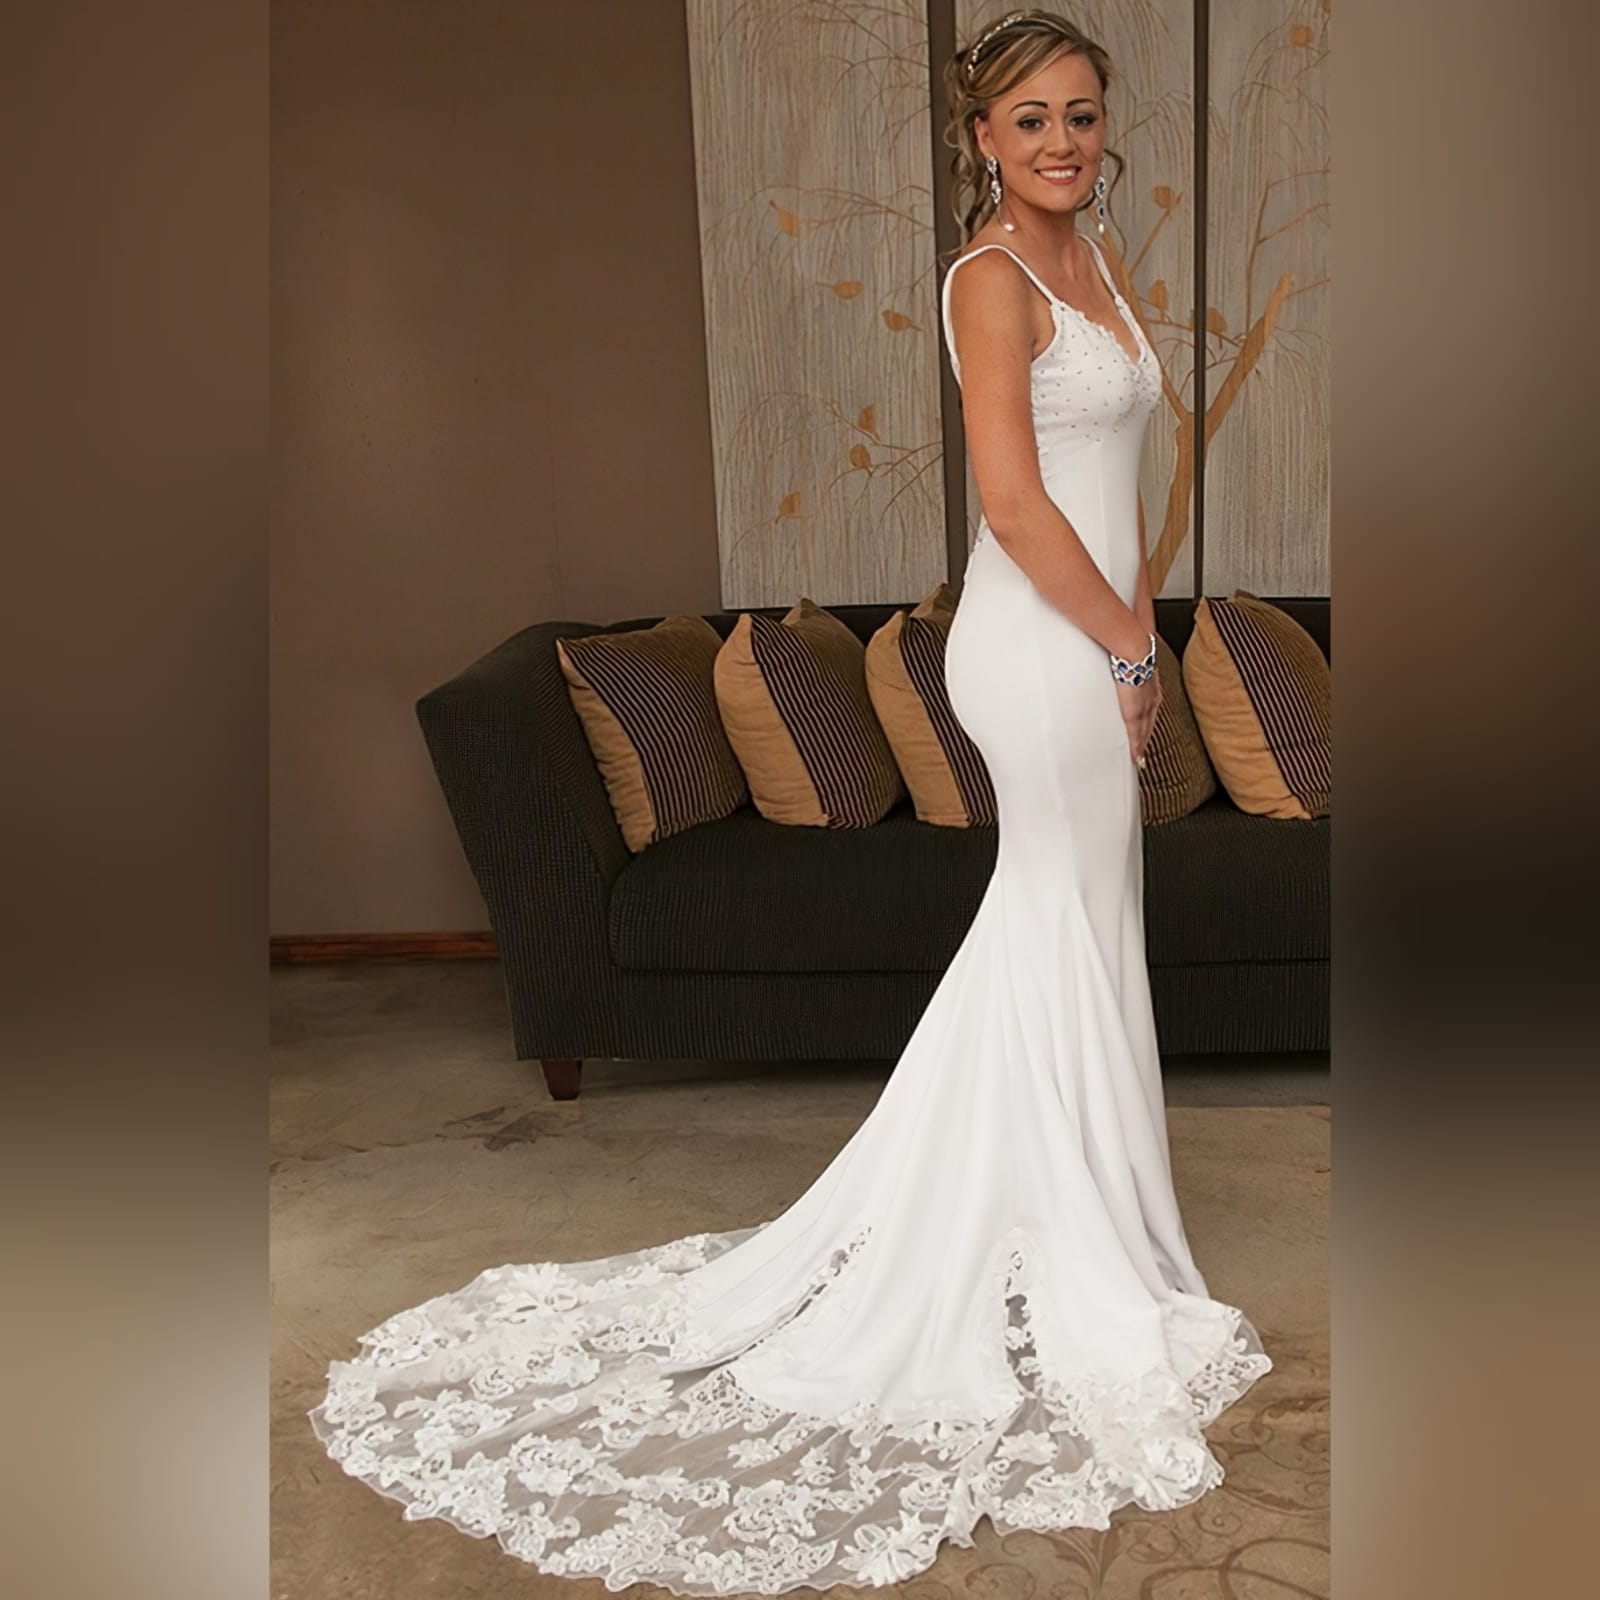 Stunning white soft mermaid lace wedding dress 11 a stunning white soft mermaid lace wedding dress designed and made per measurement sent to my client in south africa. An absolute romantic and elegant design that made her day more special and memorable. Wedding dress with a beaded bust. Sheer lace back and a long lace train to add a dramatic touch to this dress